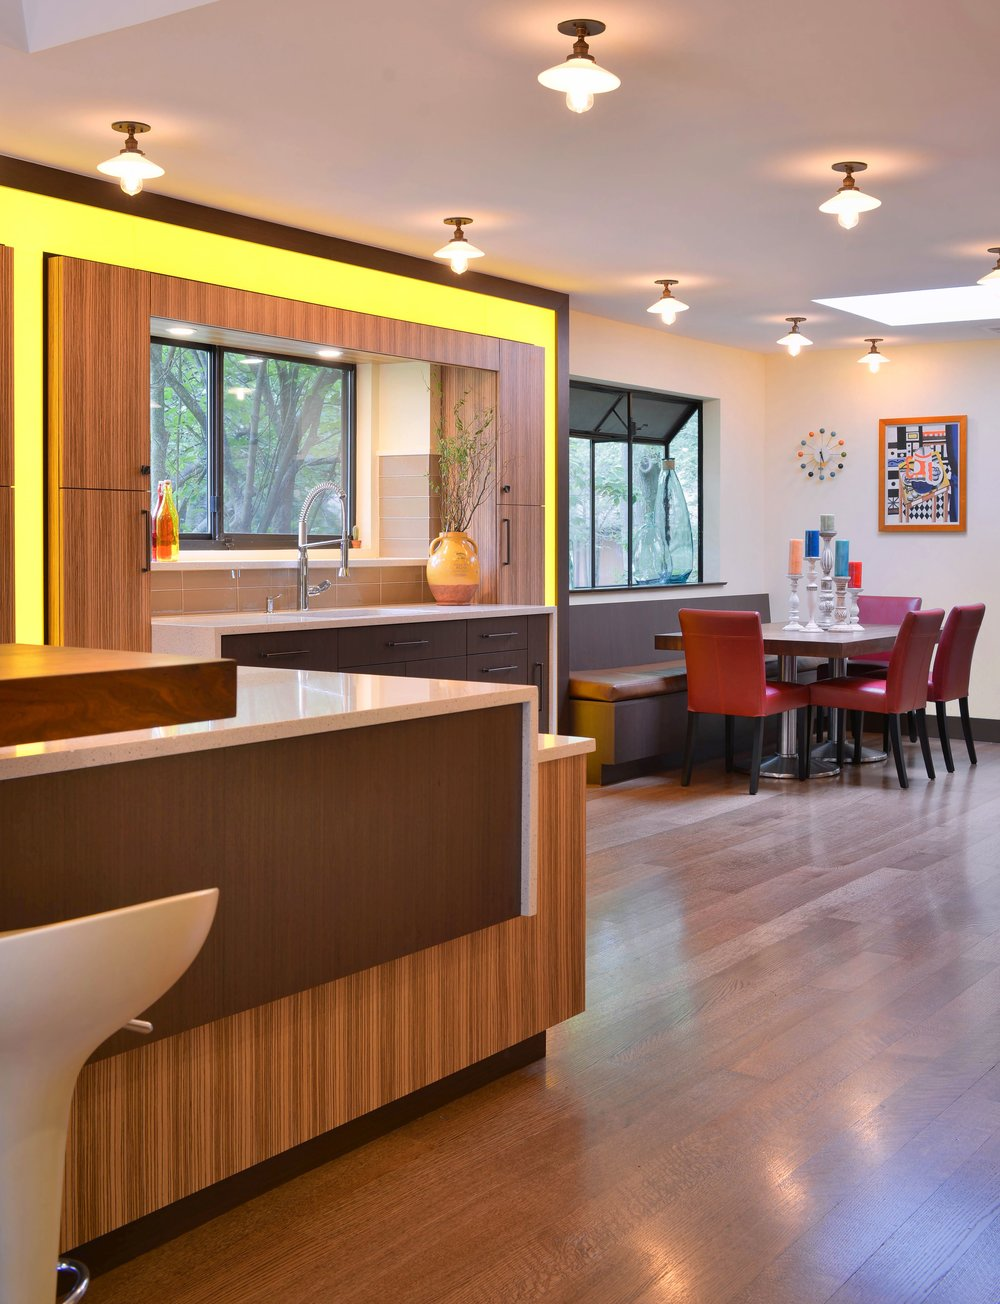 Contemporary style kitchen with couch and breakfast table